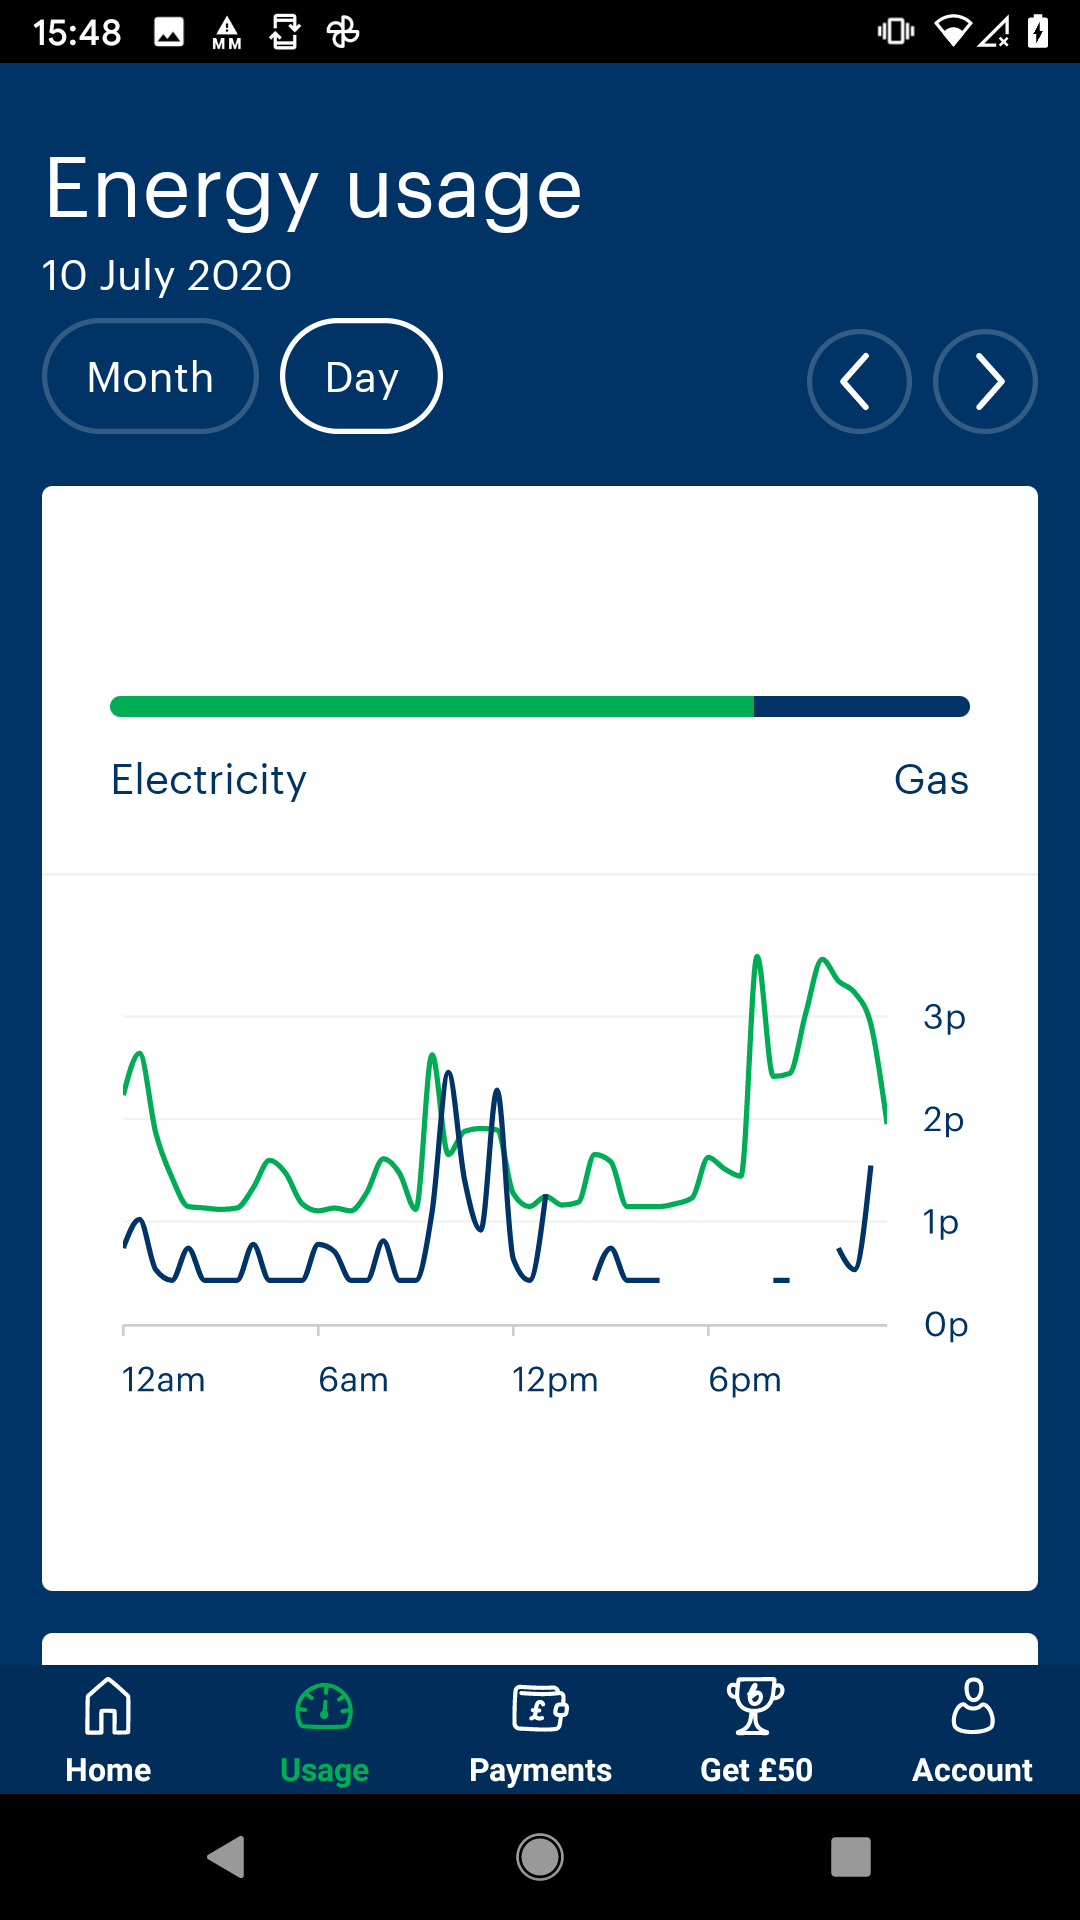 A line graph showing gas and electricity usage on 10 July, including gaps in the lines when usage wasn't recorded.